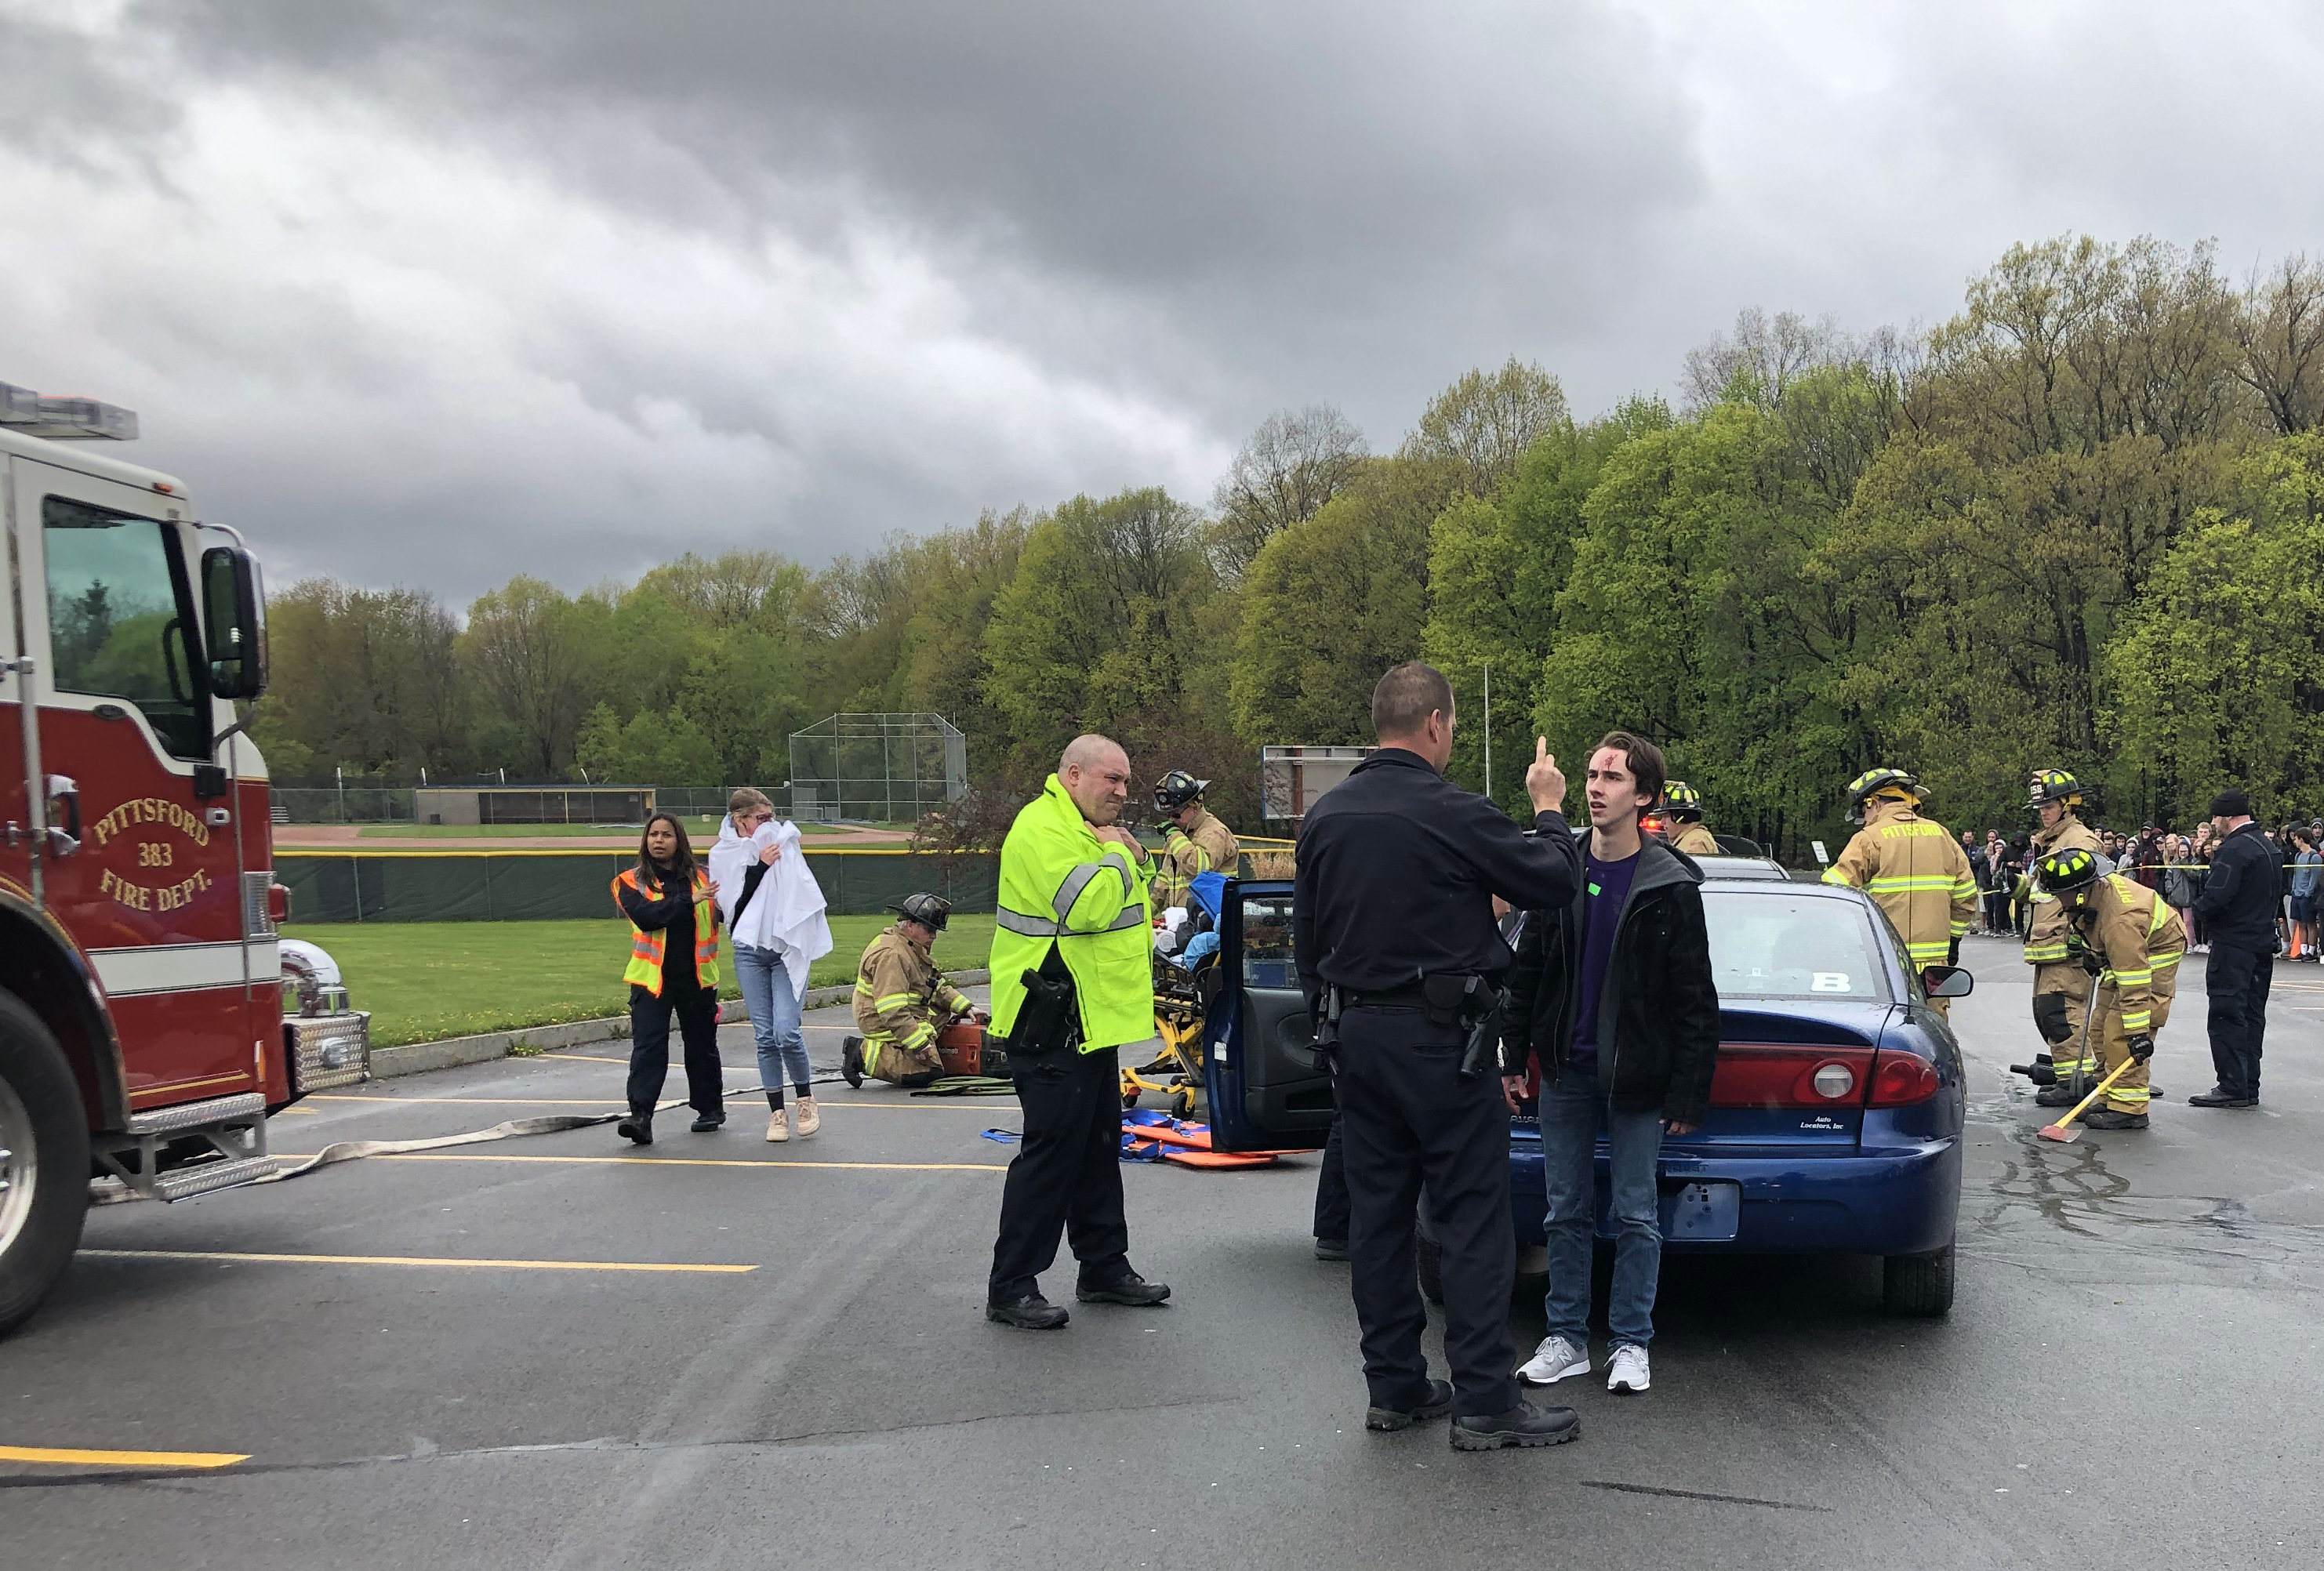 PVA Participates in Drunk Driving Reenactment at Pittsford Sutherland High School